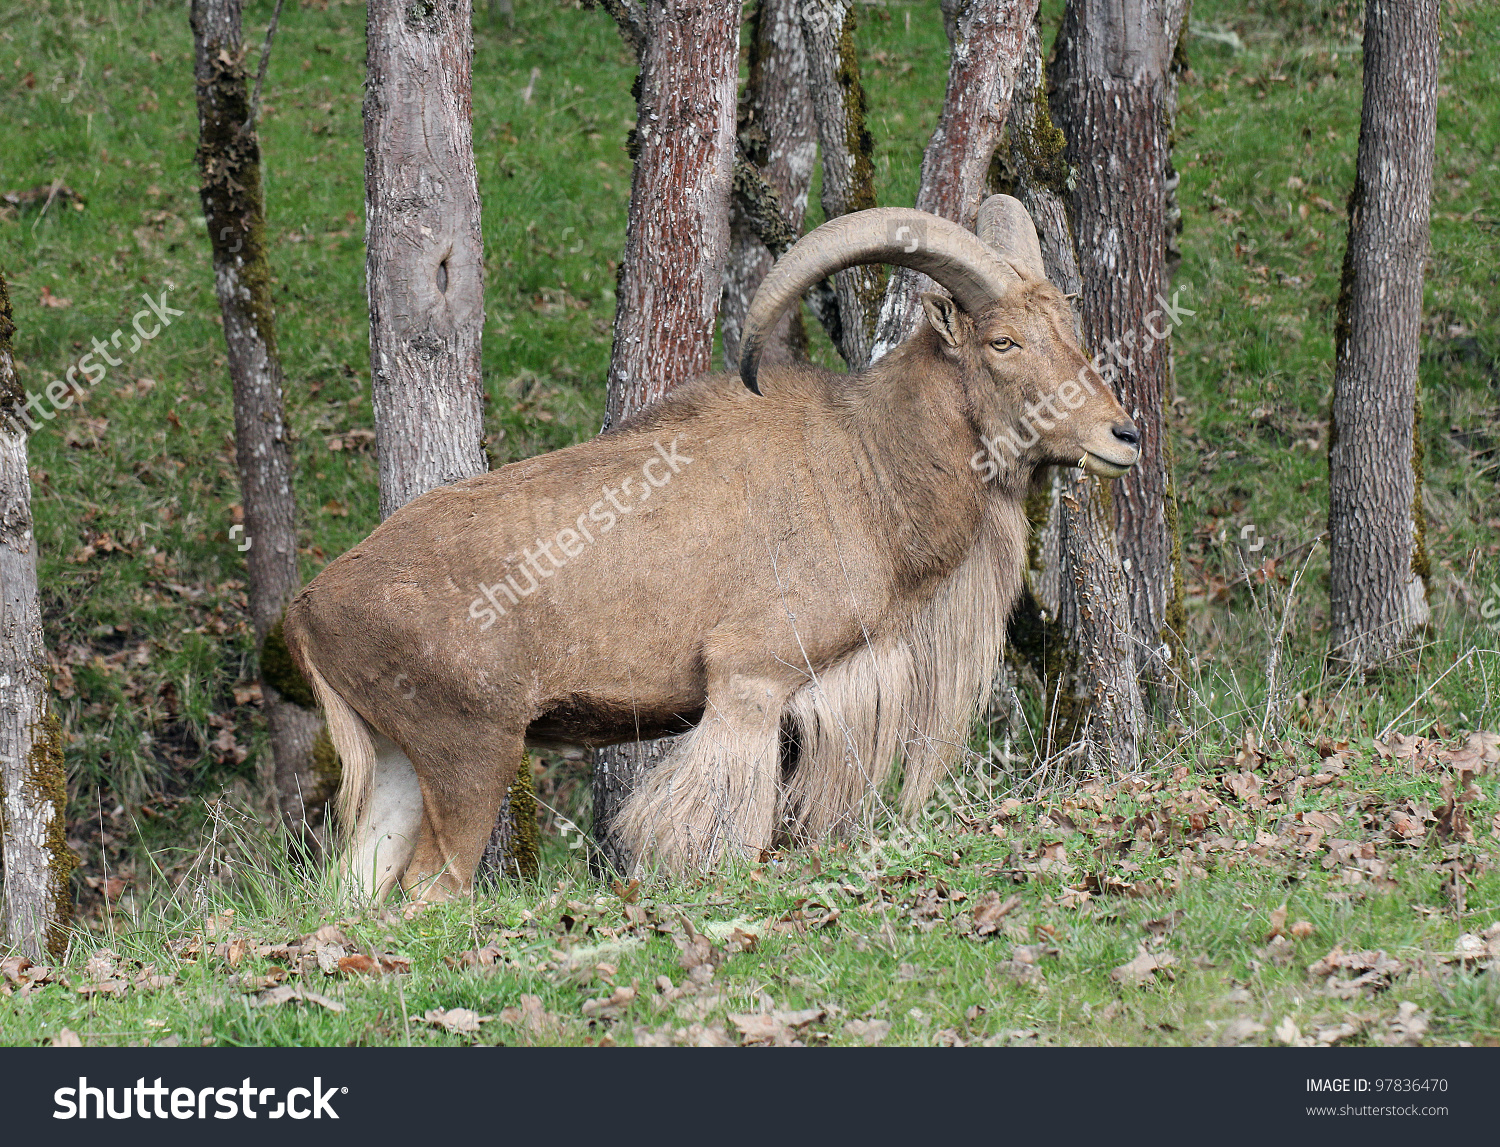 Big Horn Aoudad Or Barbary Sheep In Woods Stock Photo 97836470.